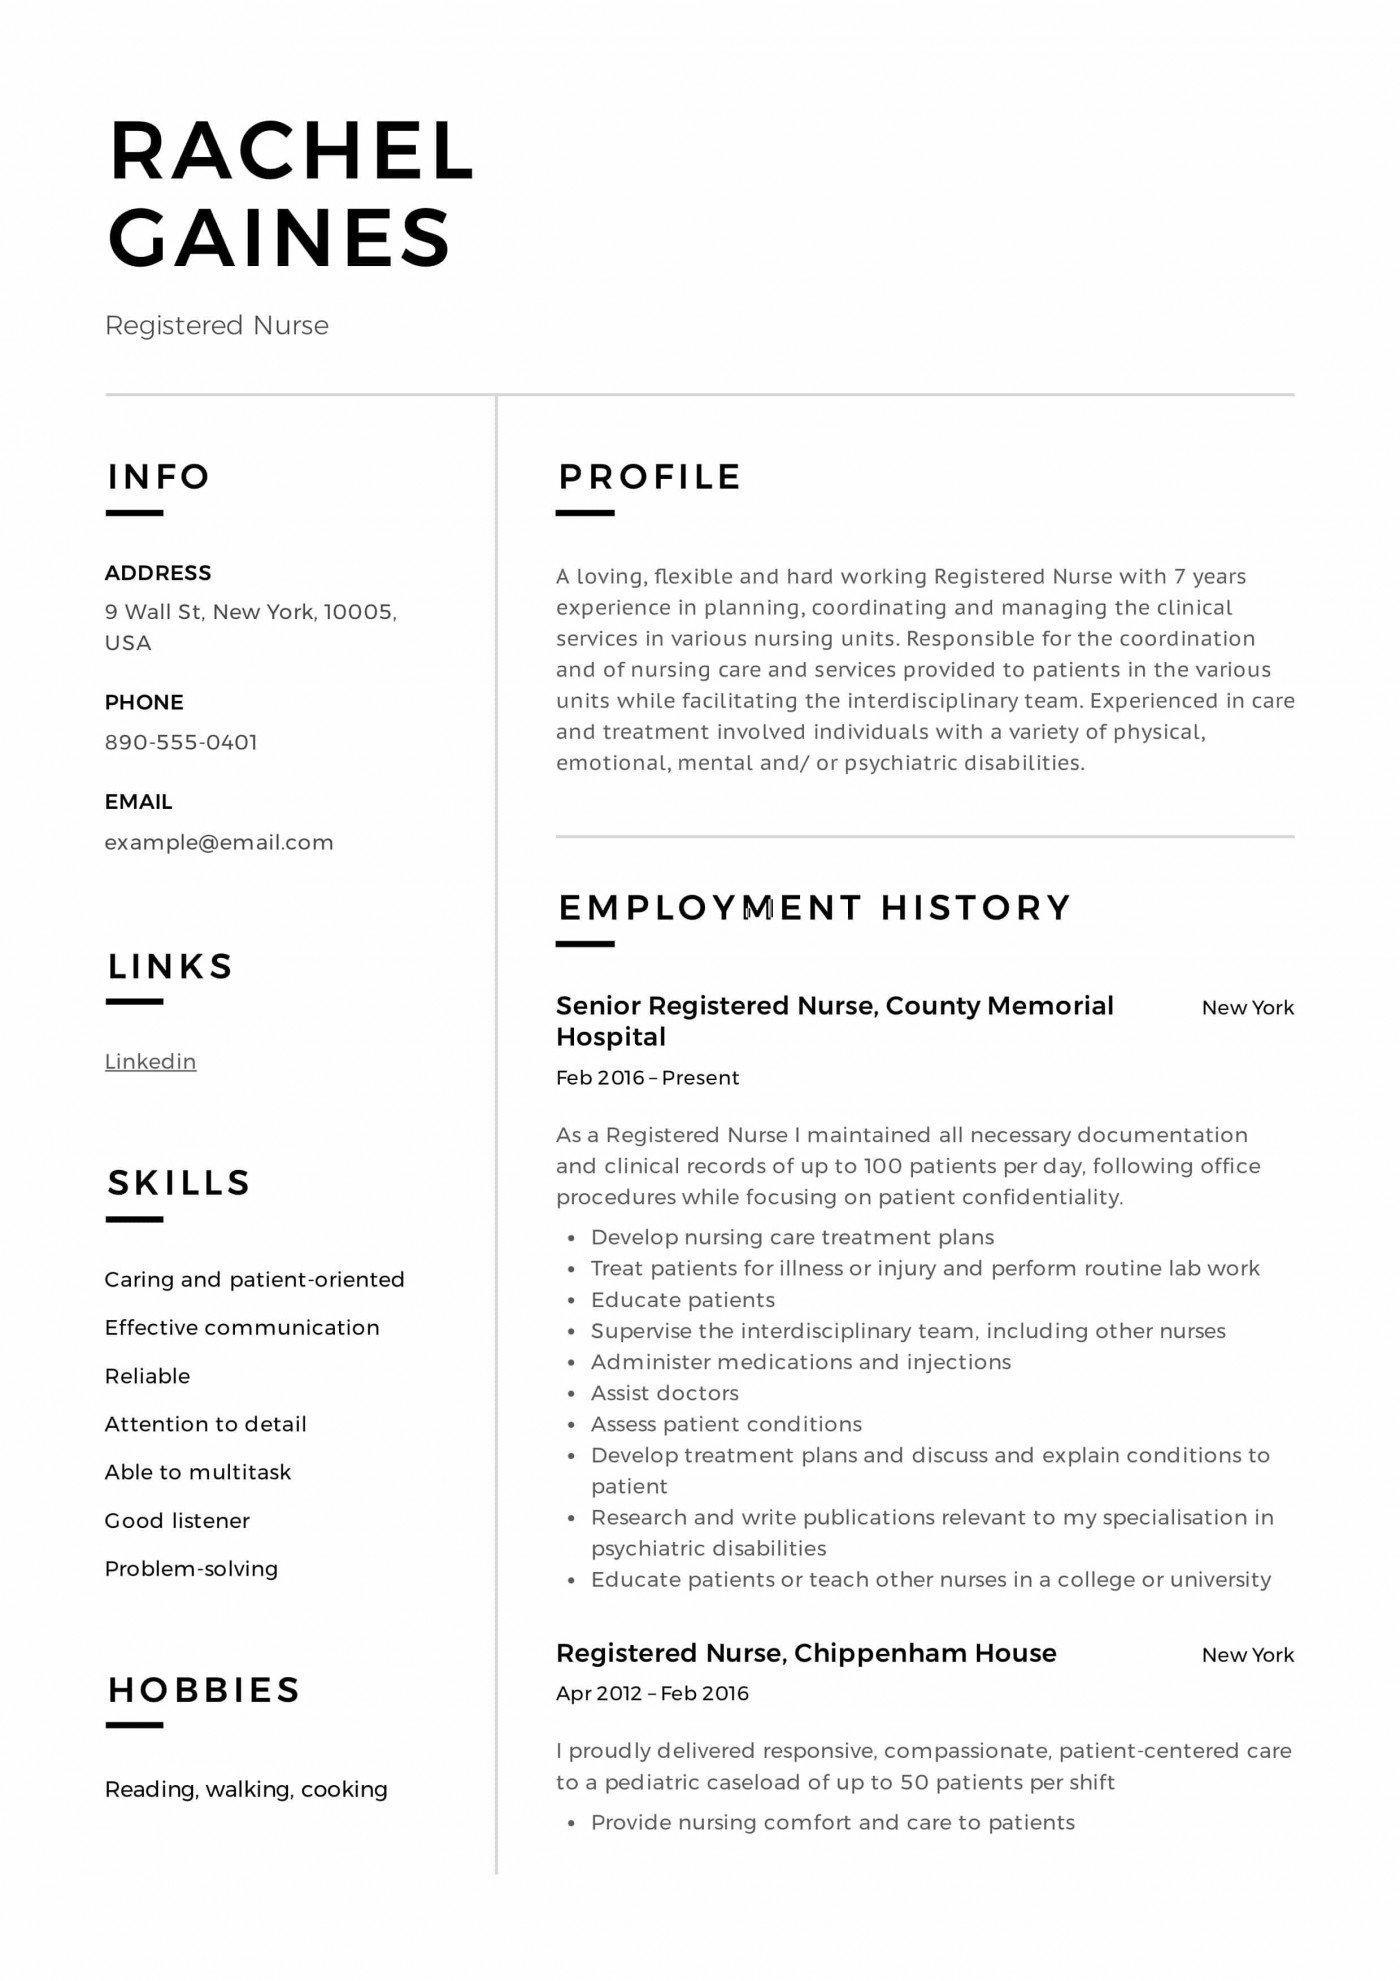 008 Impressive Resume Template For Nurse Inspiration  Sample Nursing Assistant With No Experience Rn' Free1400